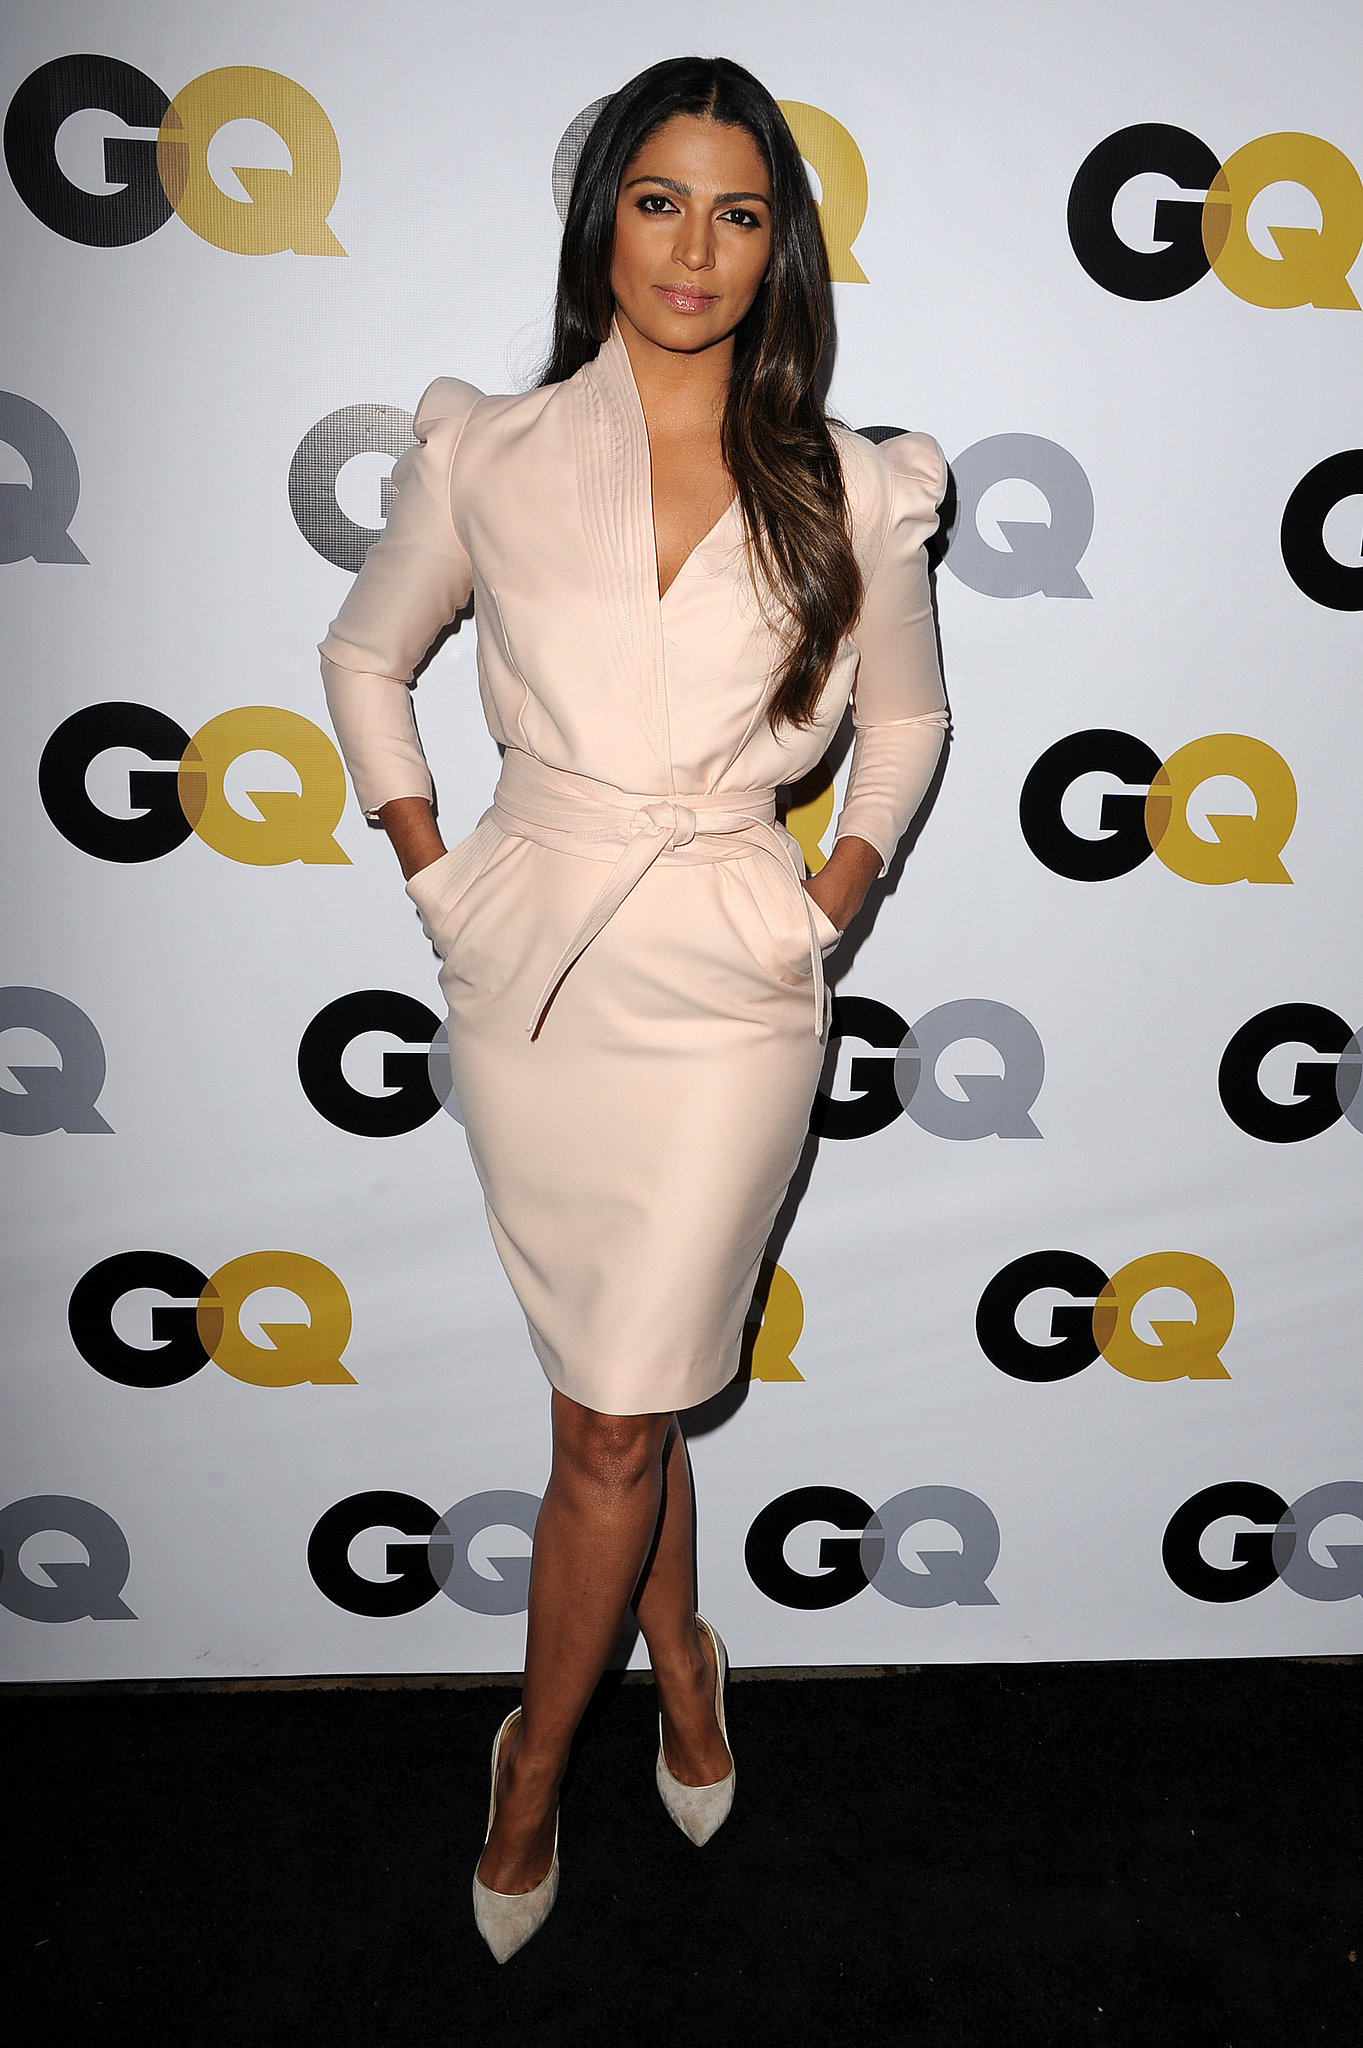 Camila Alves wore a cream-colored dress to the GQ Men of the Year party.